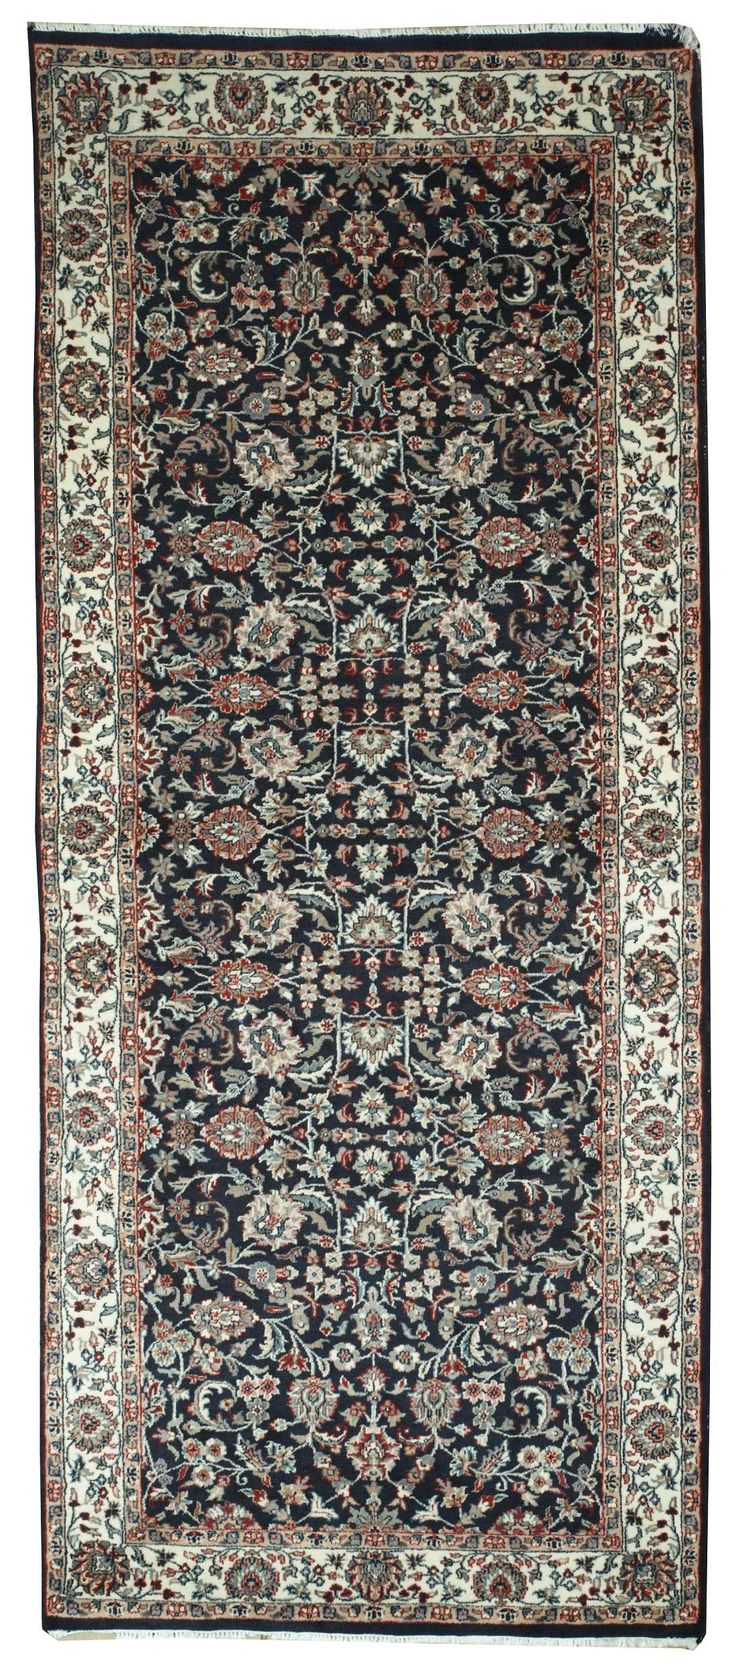 This beautiful Handmade Knotted Rectangular rug is approximately 4 x 9 New Contemporary area rug from our large collection of handmade area rugs with Persian Kashan style from India with Wool